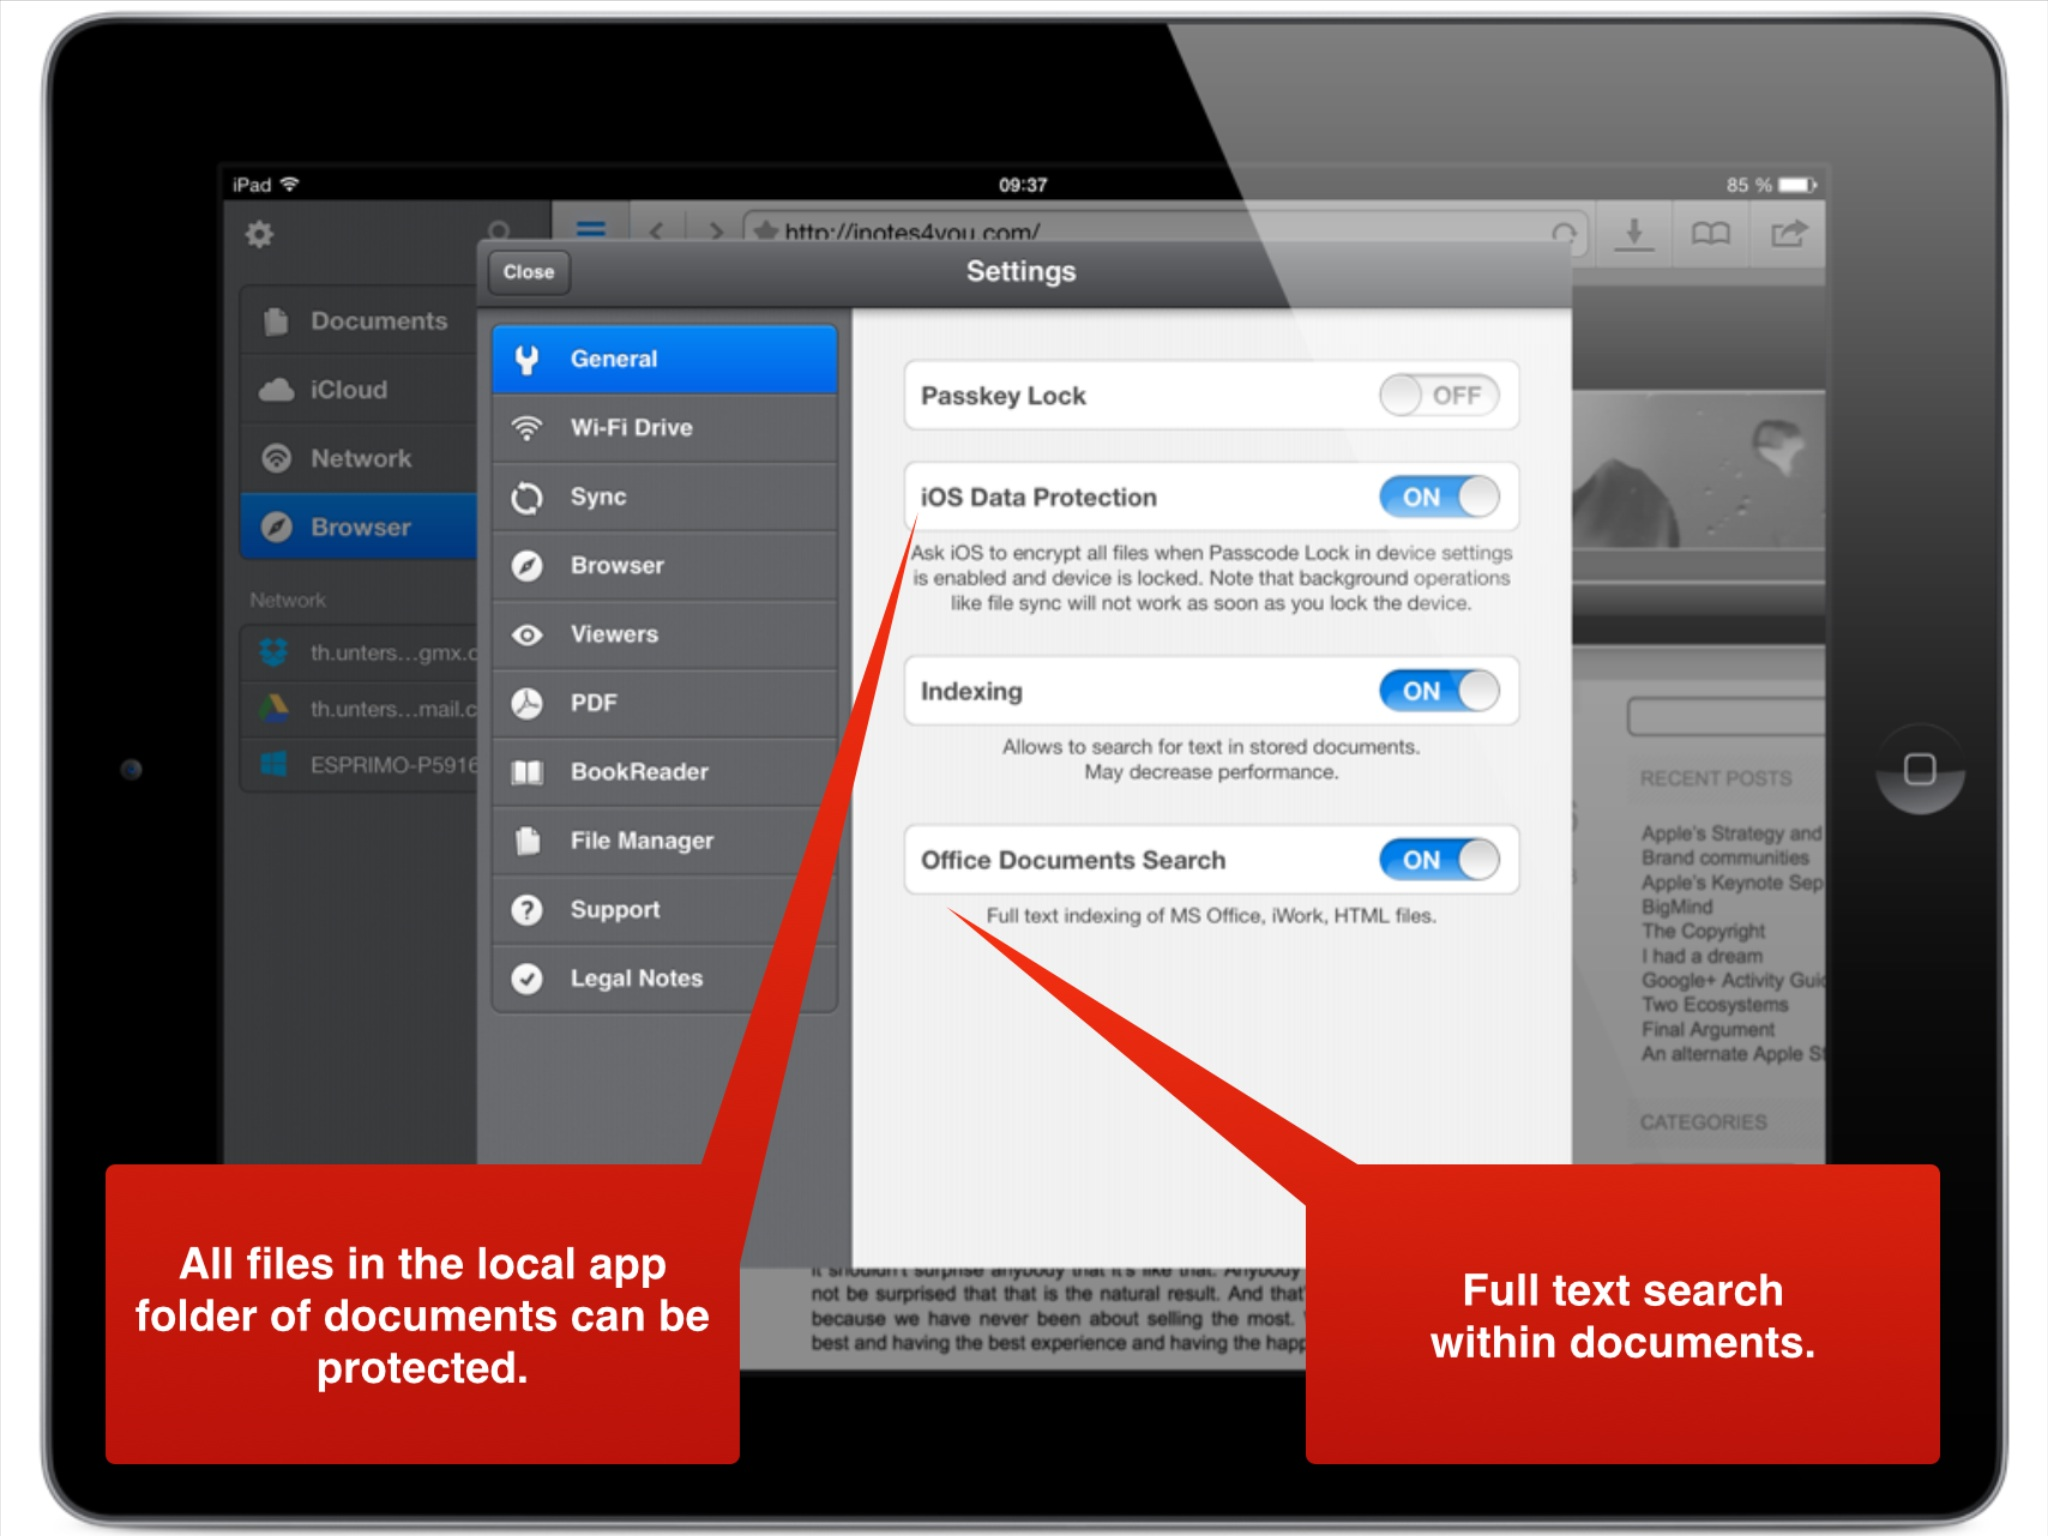 Documents by Readdle – iNotes4You